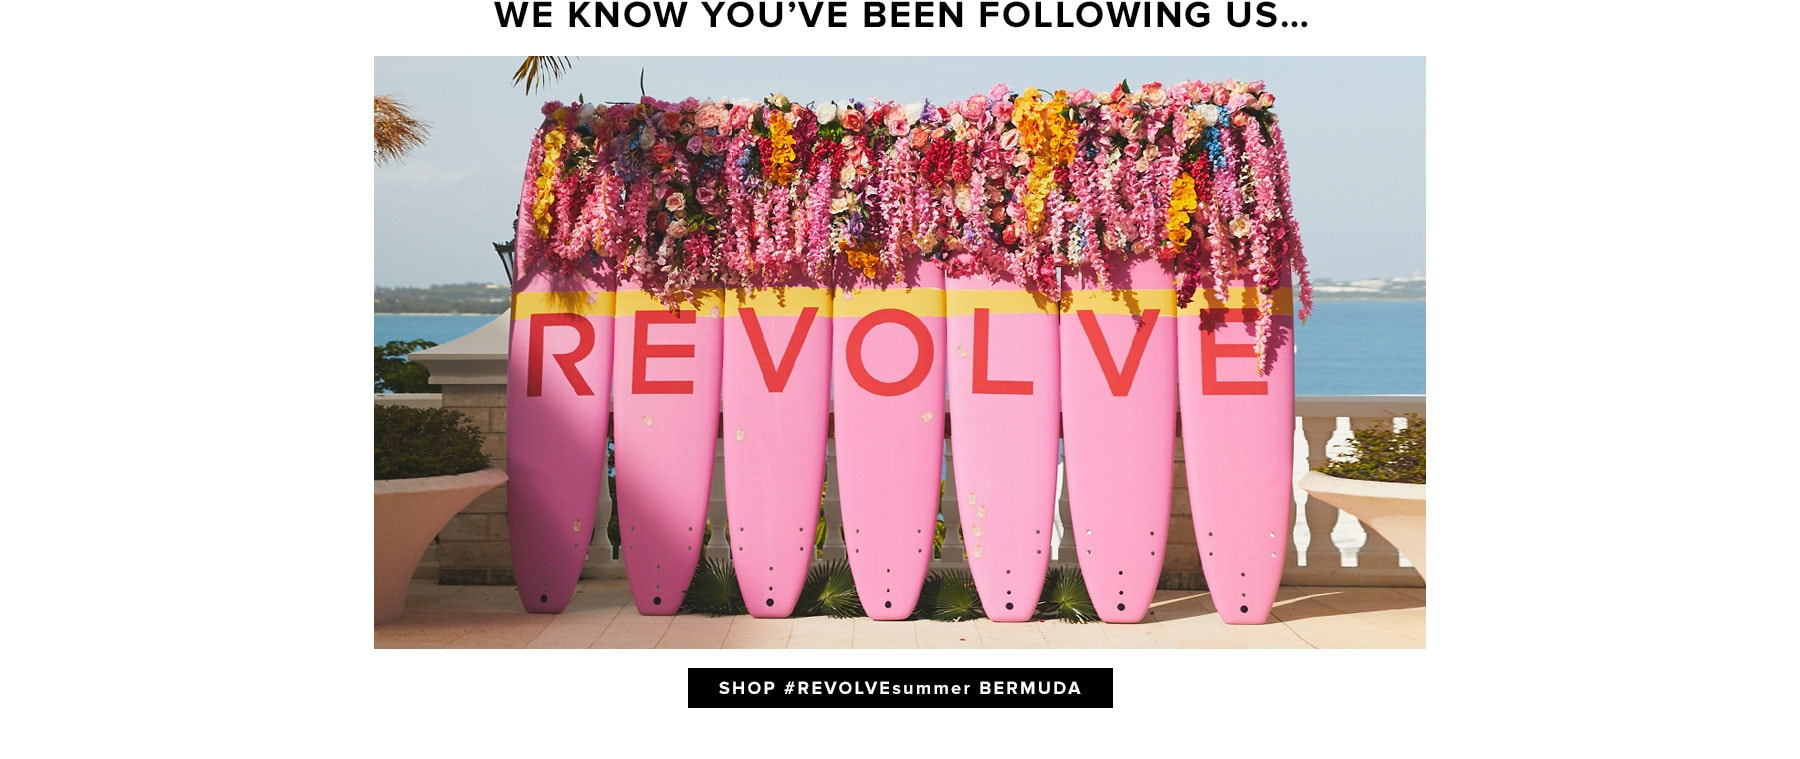 We Know You've Been Following Us... Shop REVOLVEsummer Bermuda.